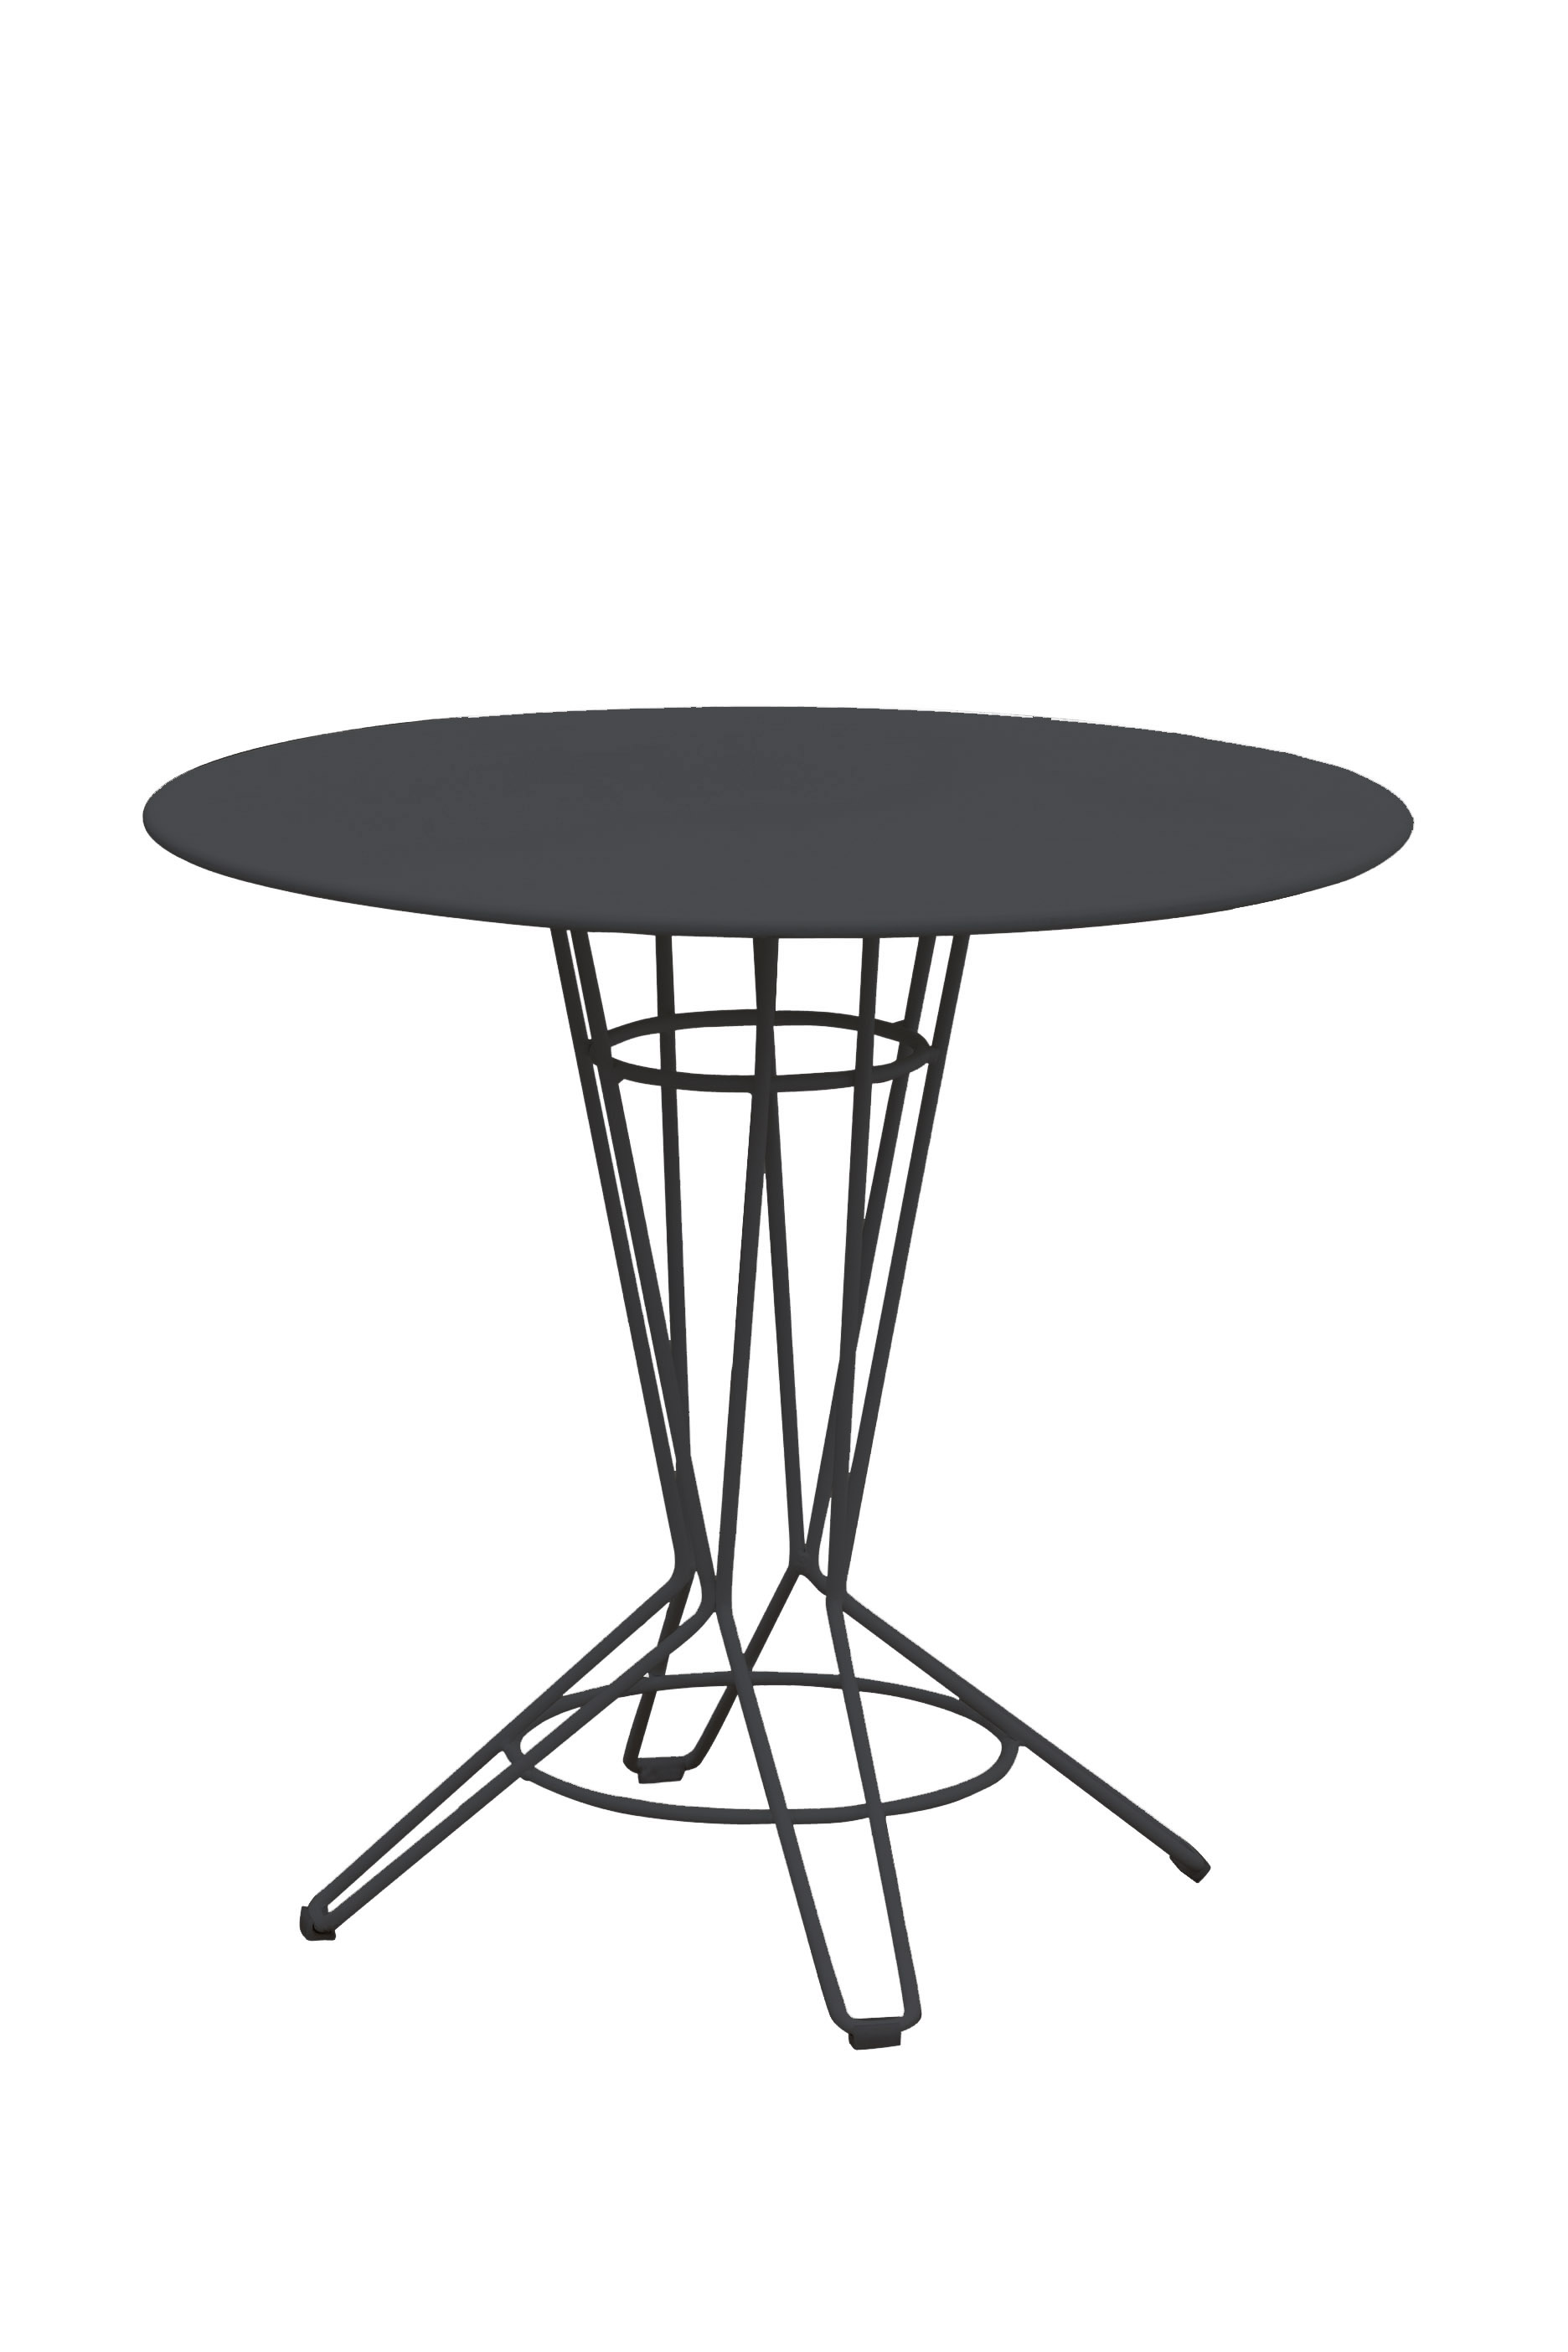 NOSTRUM - Table rond en acier gris anthracite D80